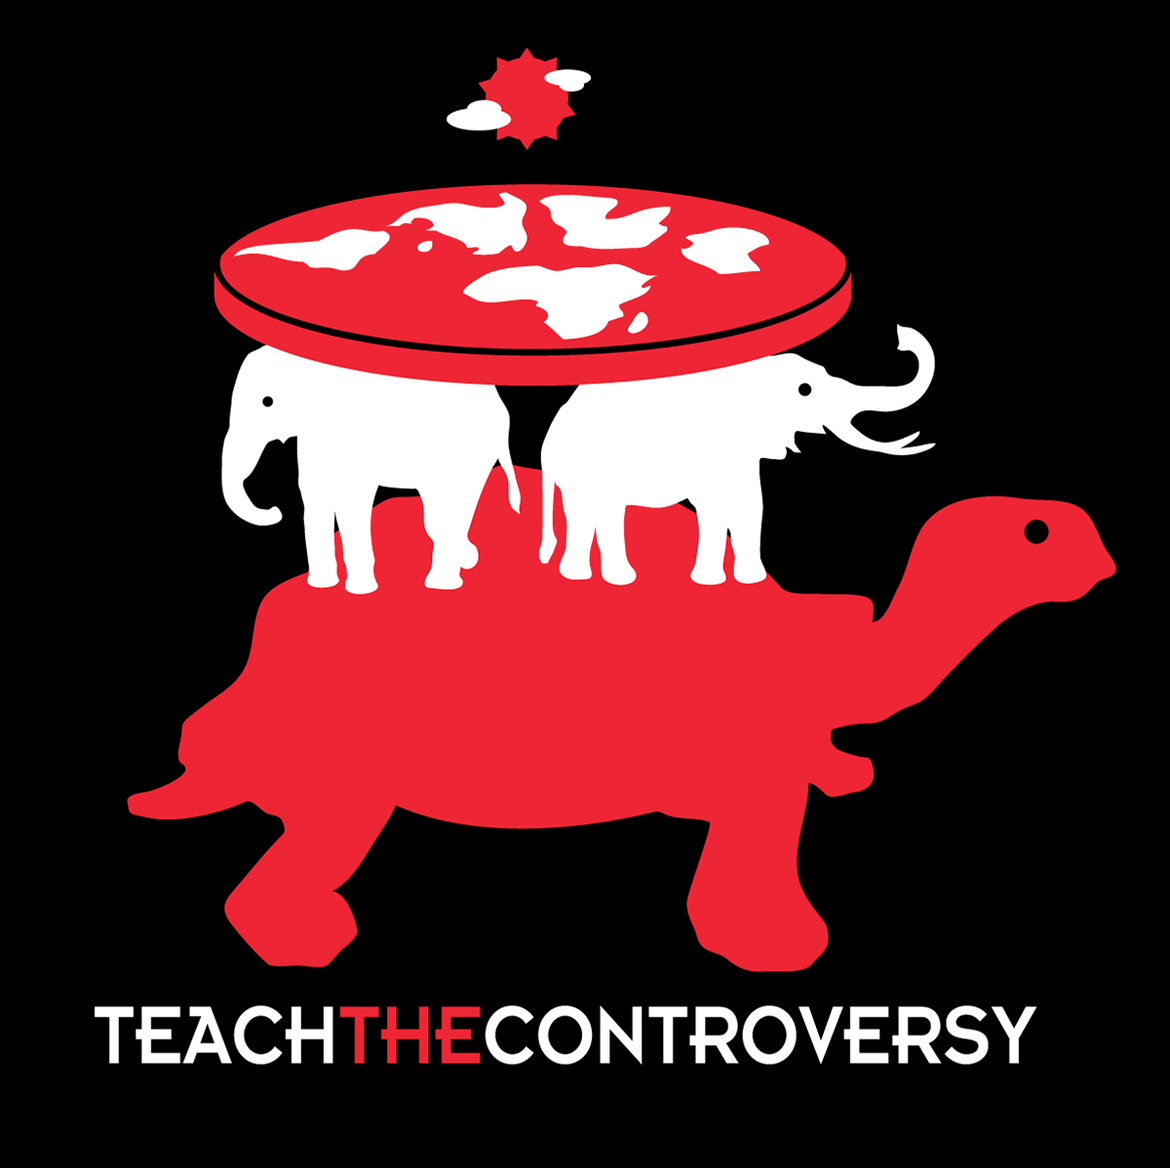 It's turtles all the way down. Credit: Teach the Controversy